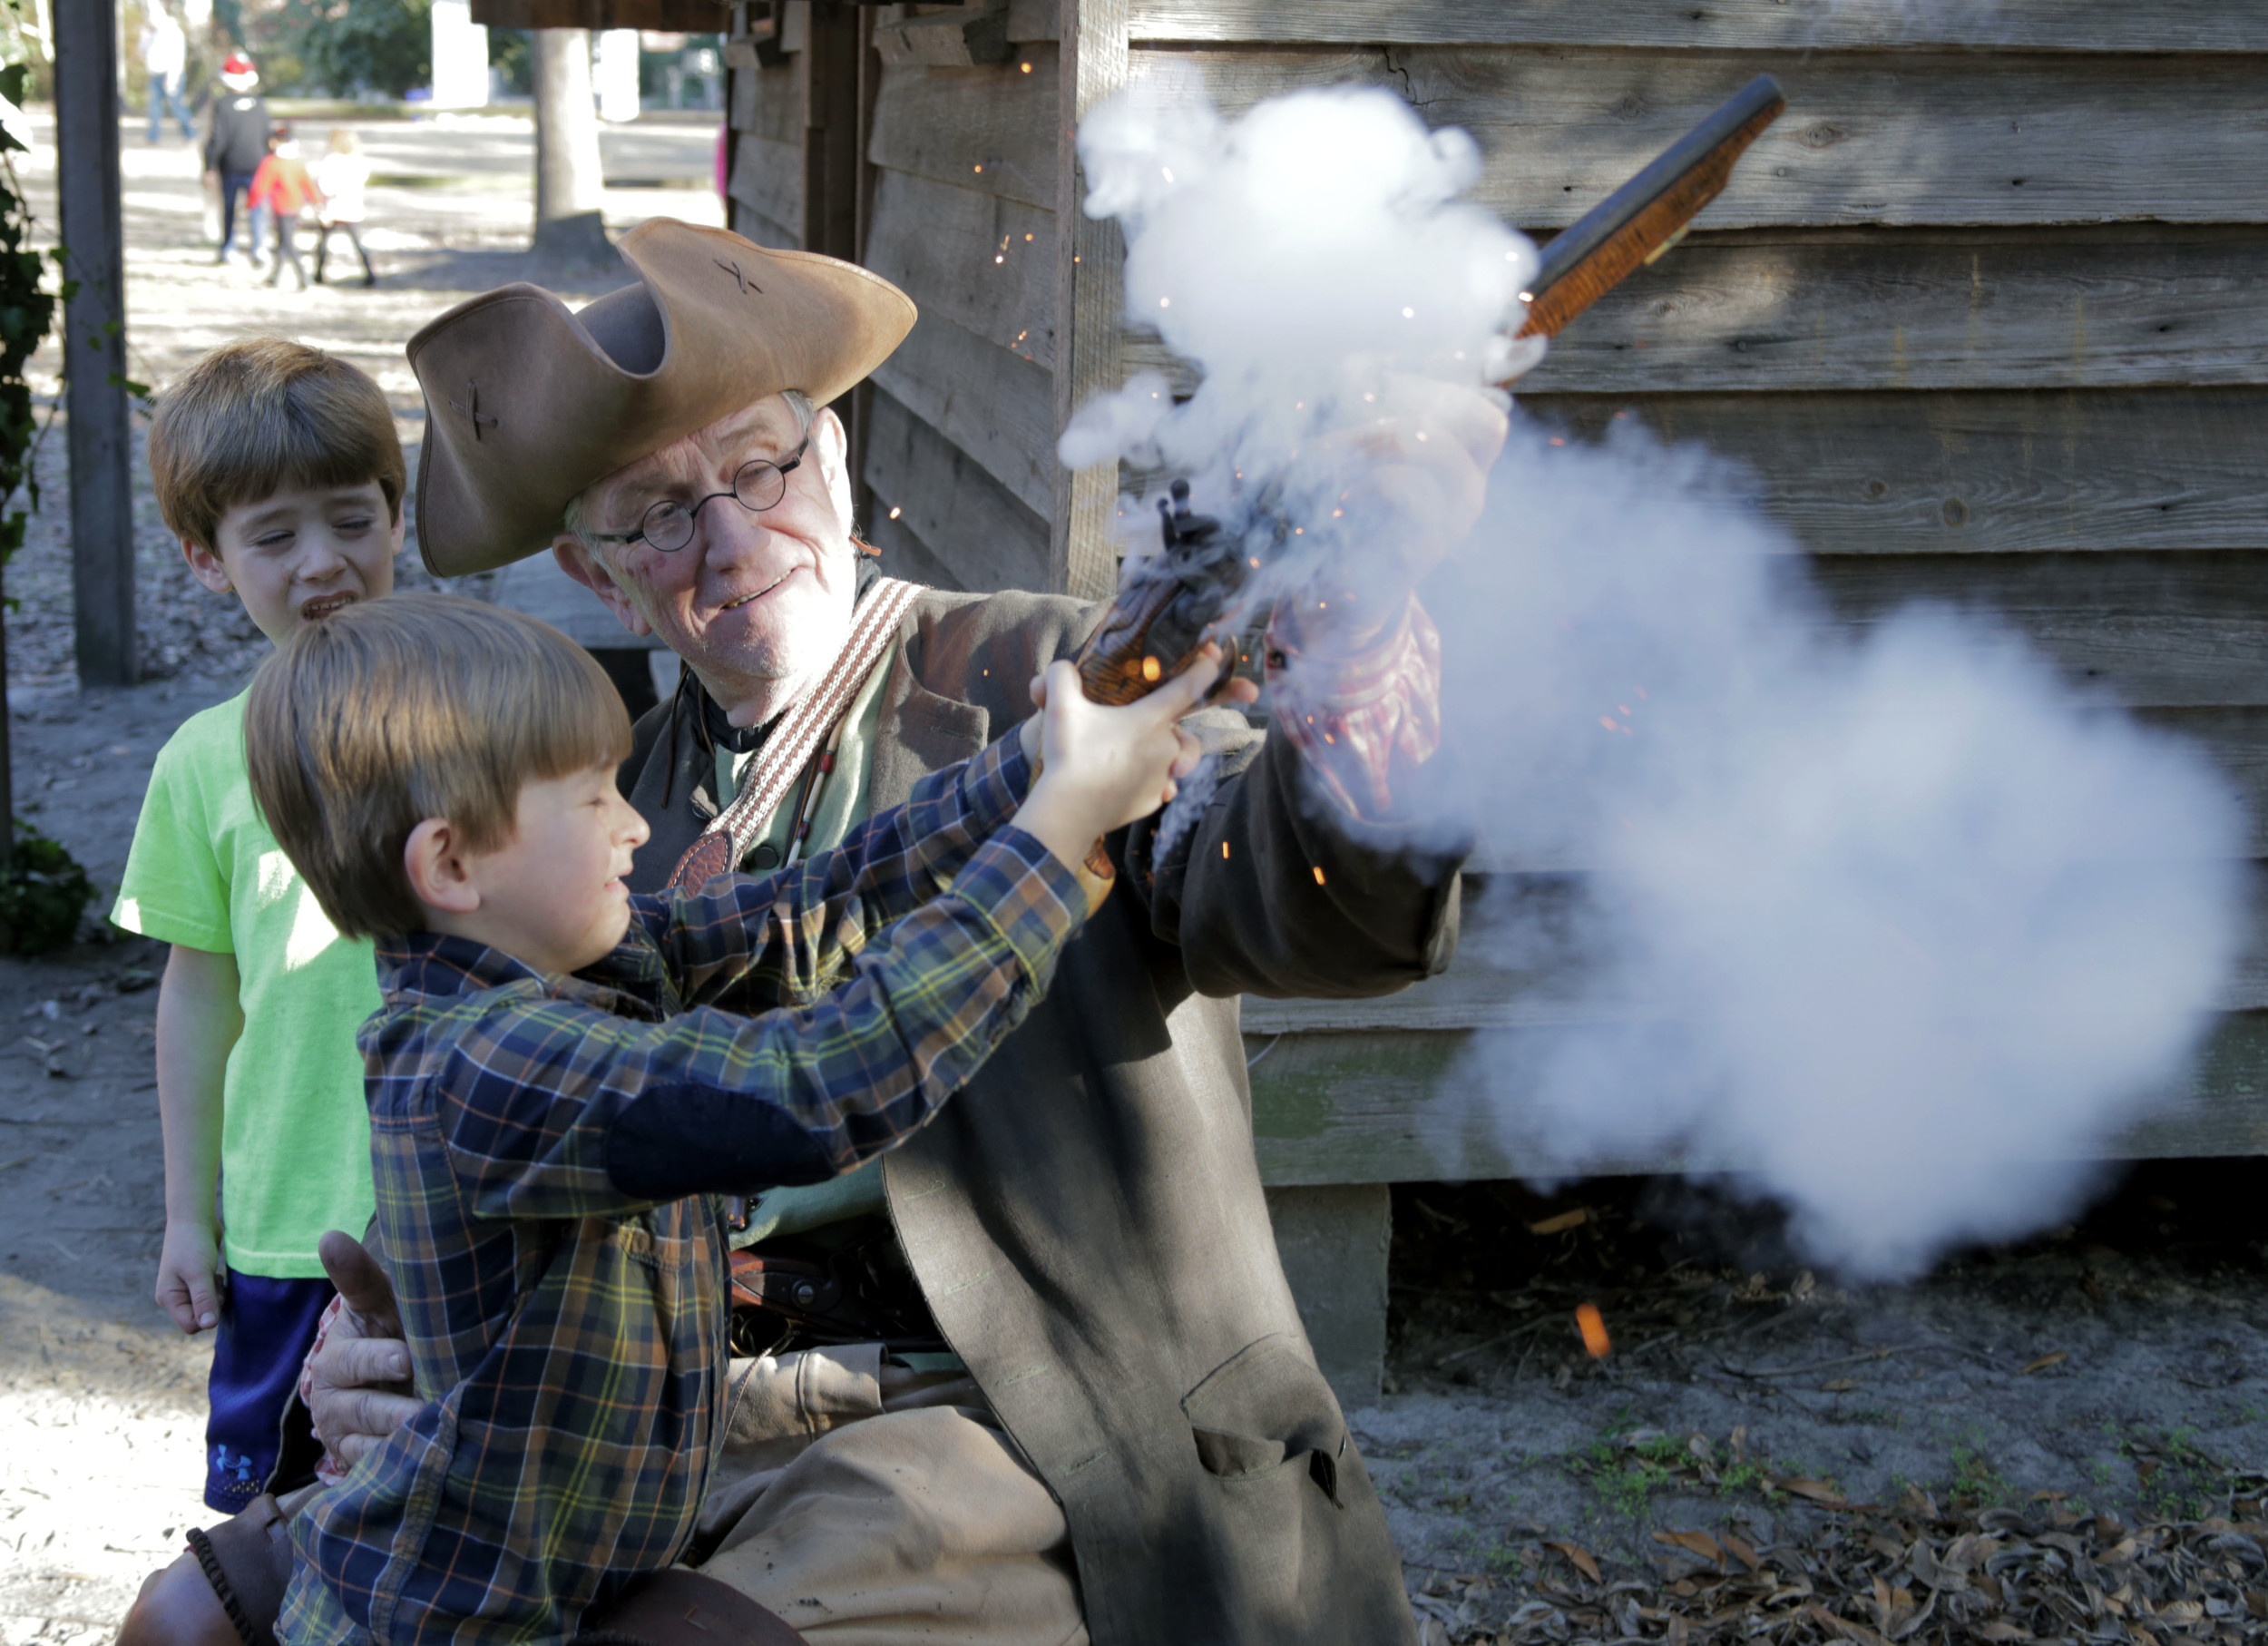 Royce Barham, then 7, fires off a flintlock pistol with the help of Frank Holloway during a Carolina Backcountry event at Sumter County Museum. Holloway will be back in Revolutionary War-era uniform to show and demonstrate his collection of weaponry from that period during Saturday's Carolina Backcountry Harvest event at the museum.